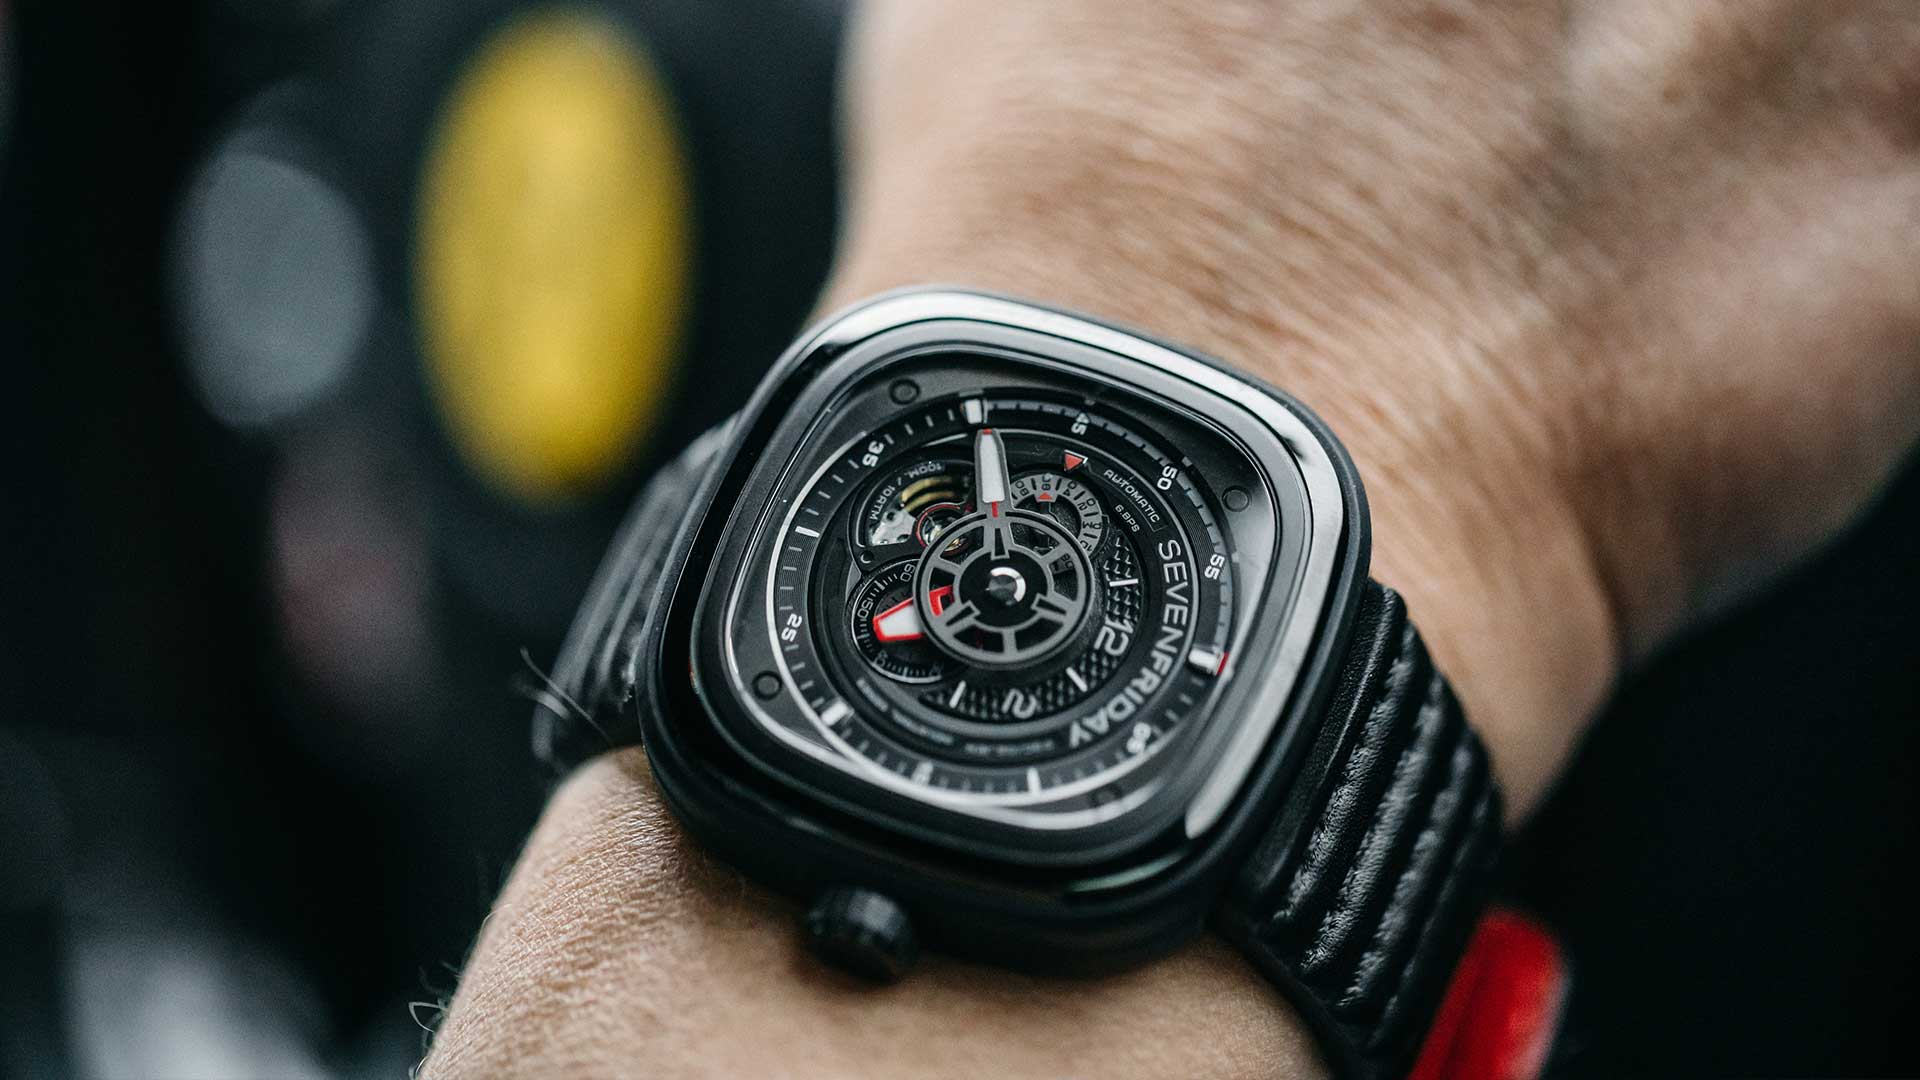 Sevenfriday watch P3C02 Racer III